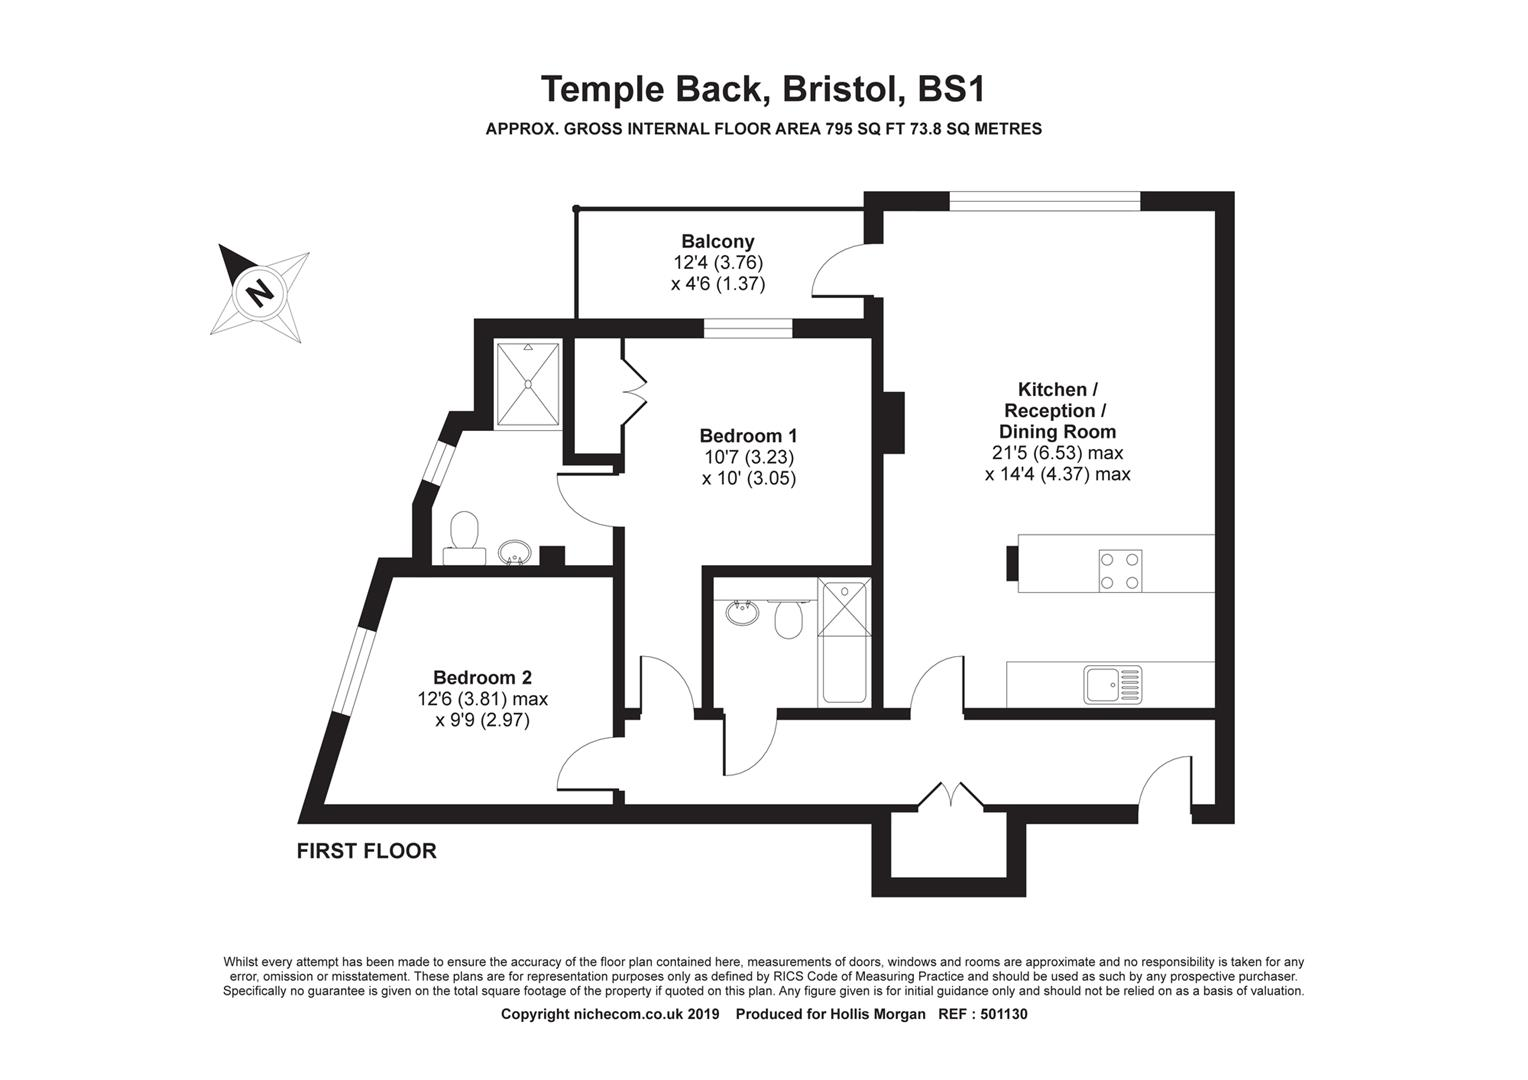 Floorplans For Temple Bridge Apartments, Redcliffe